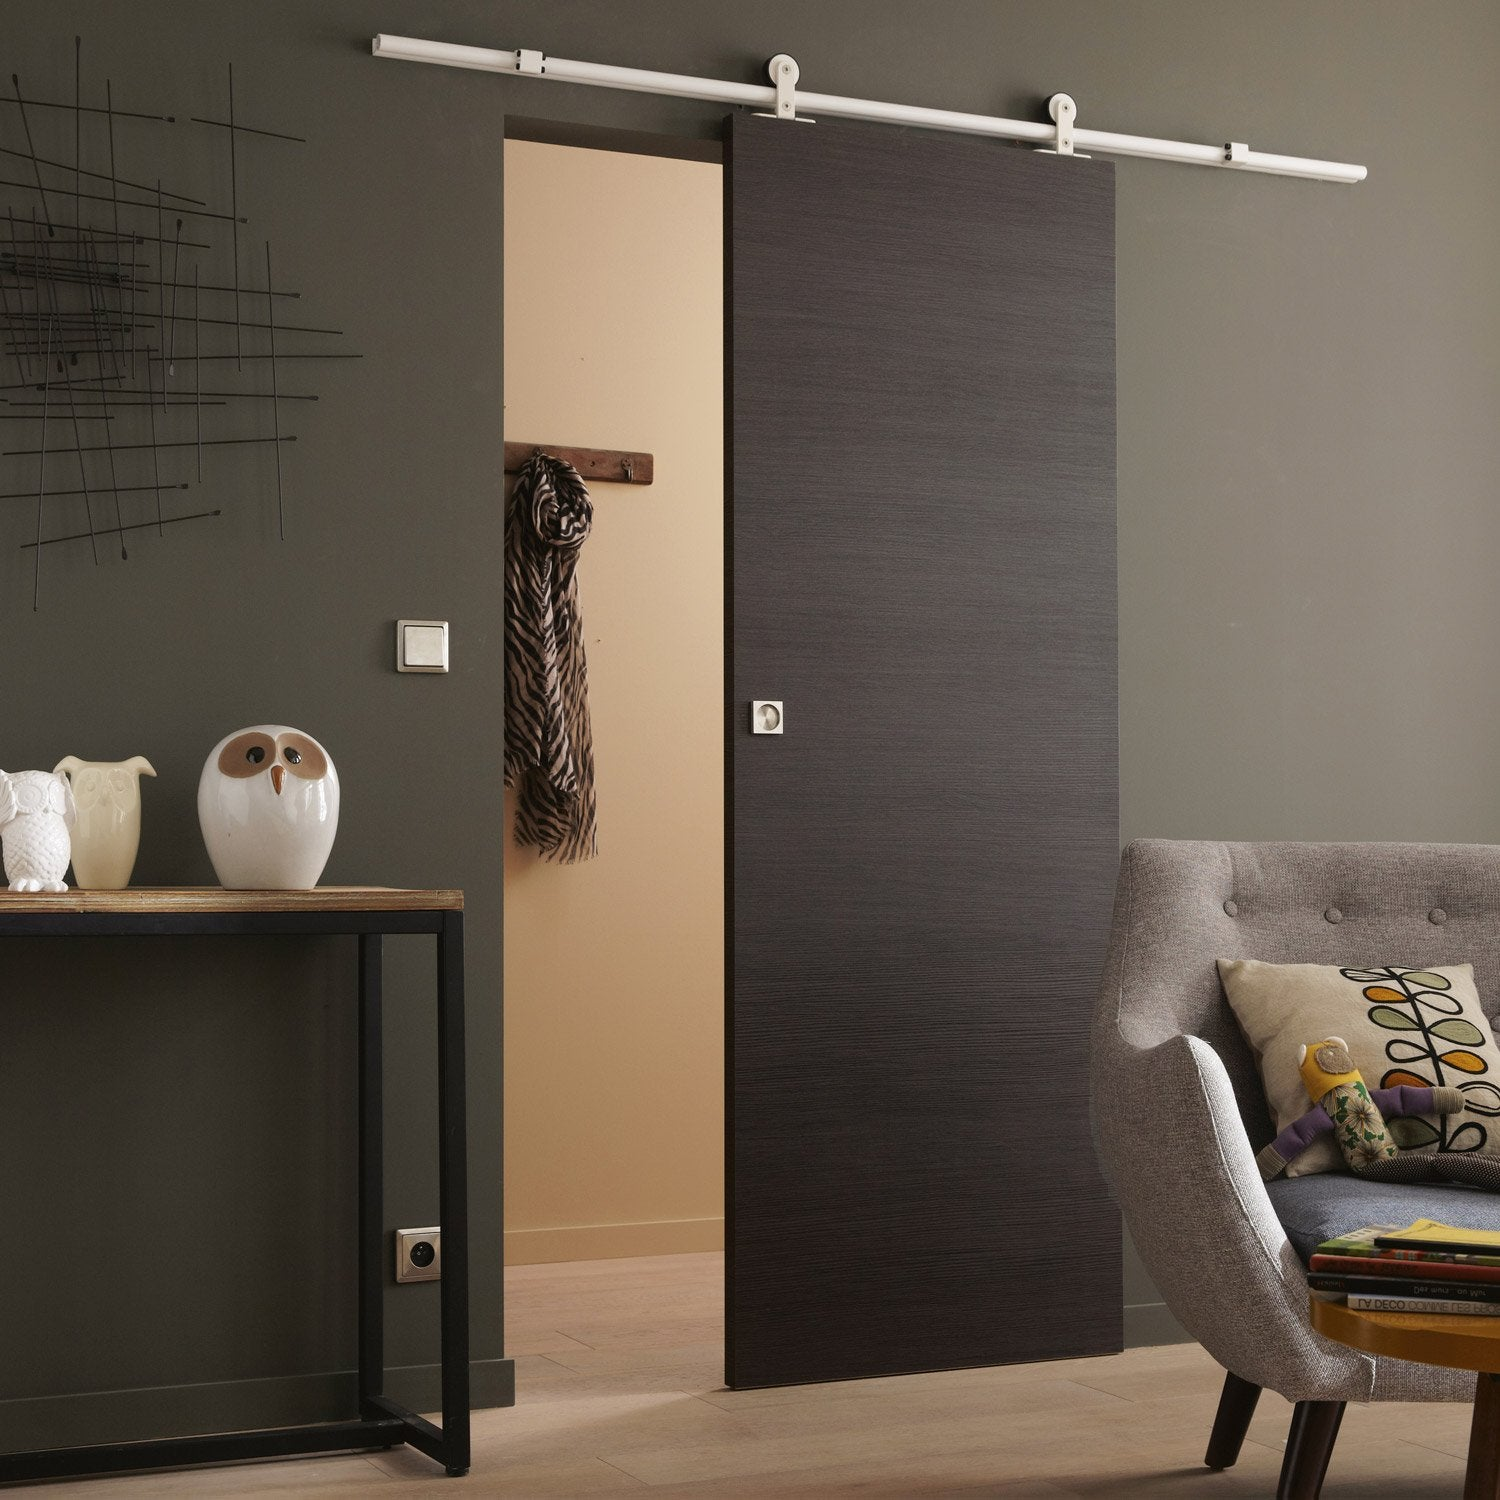 Pose d 39 une porte coulissante leroy merlin for Porte extensible leroy merlin